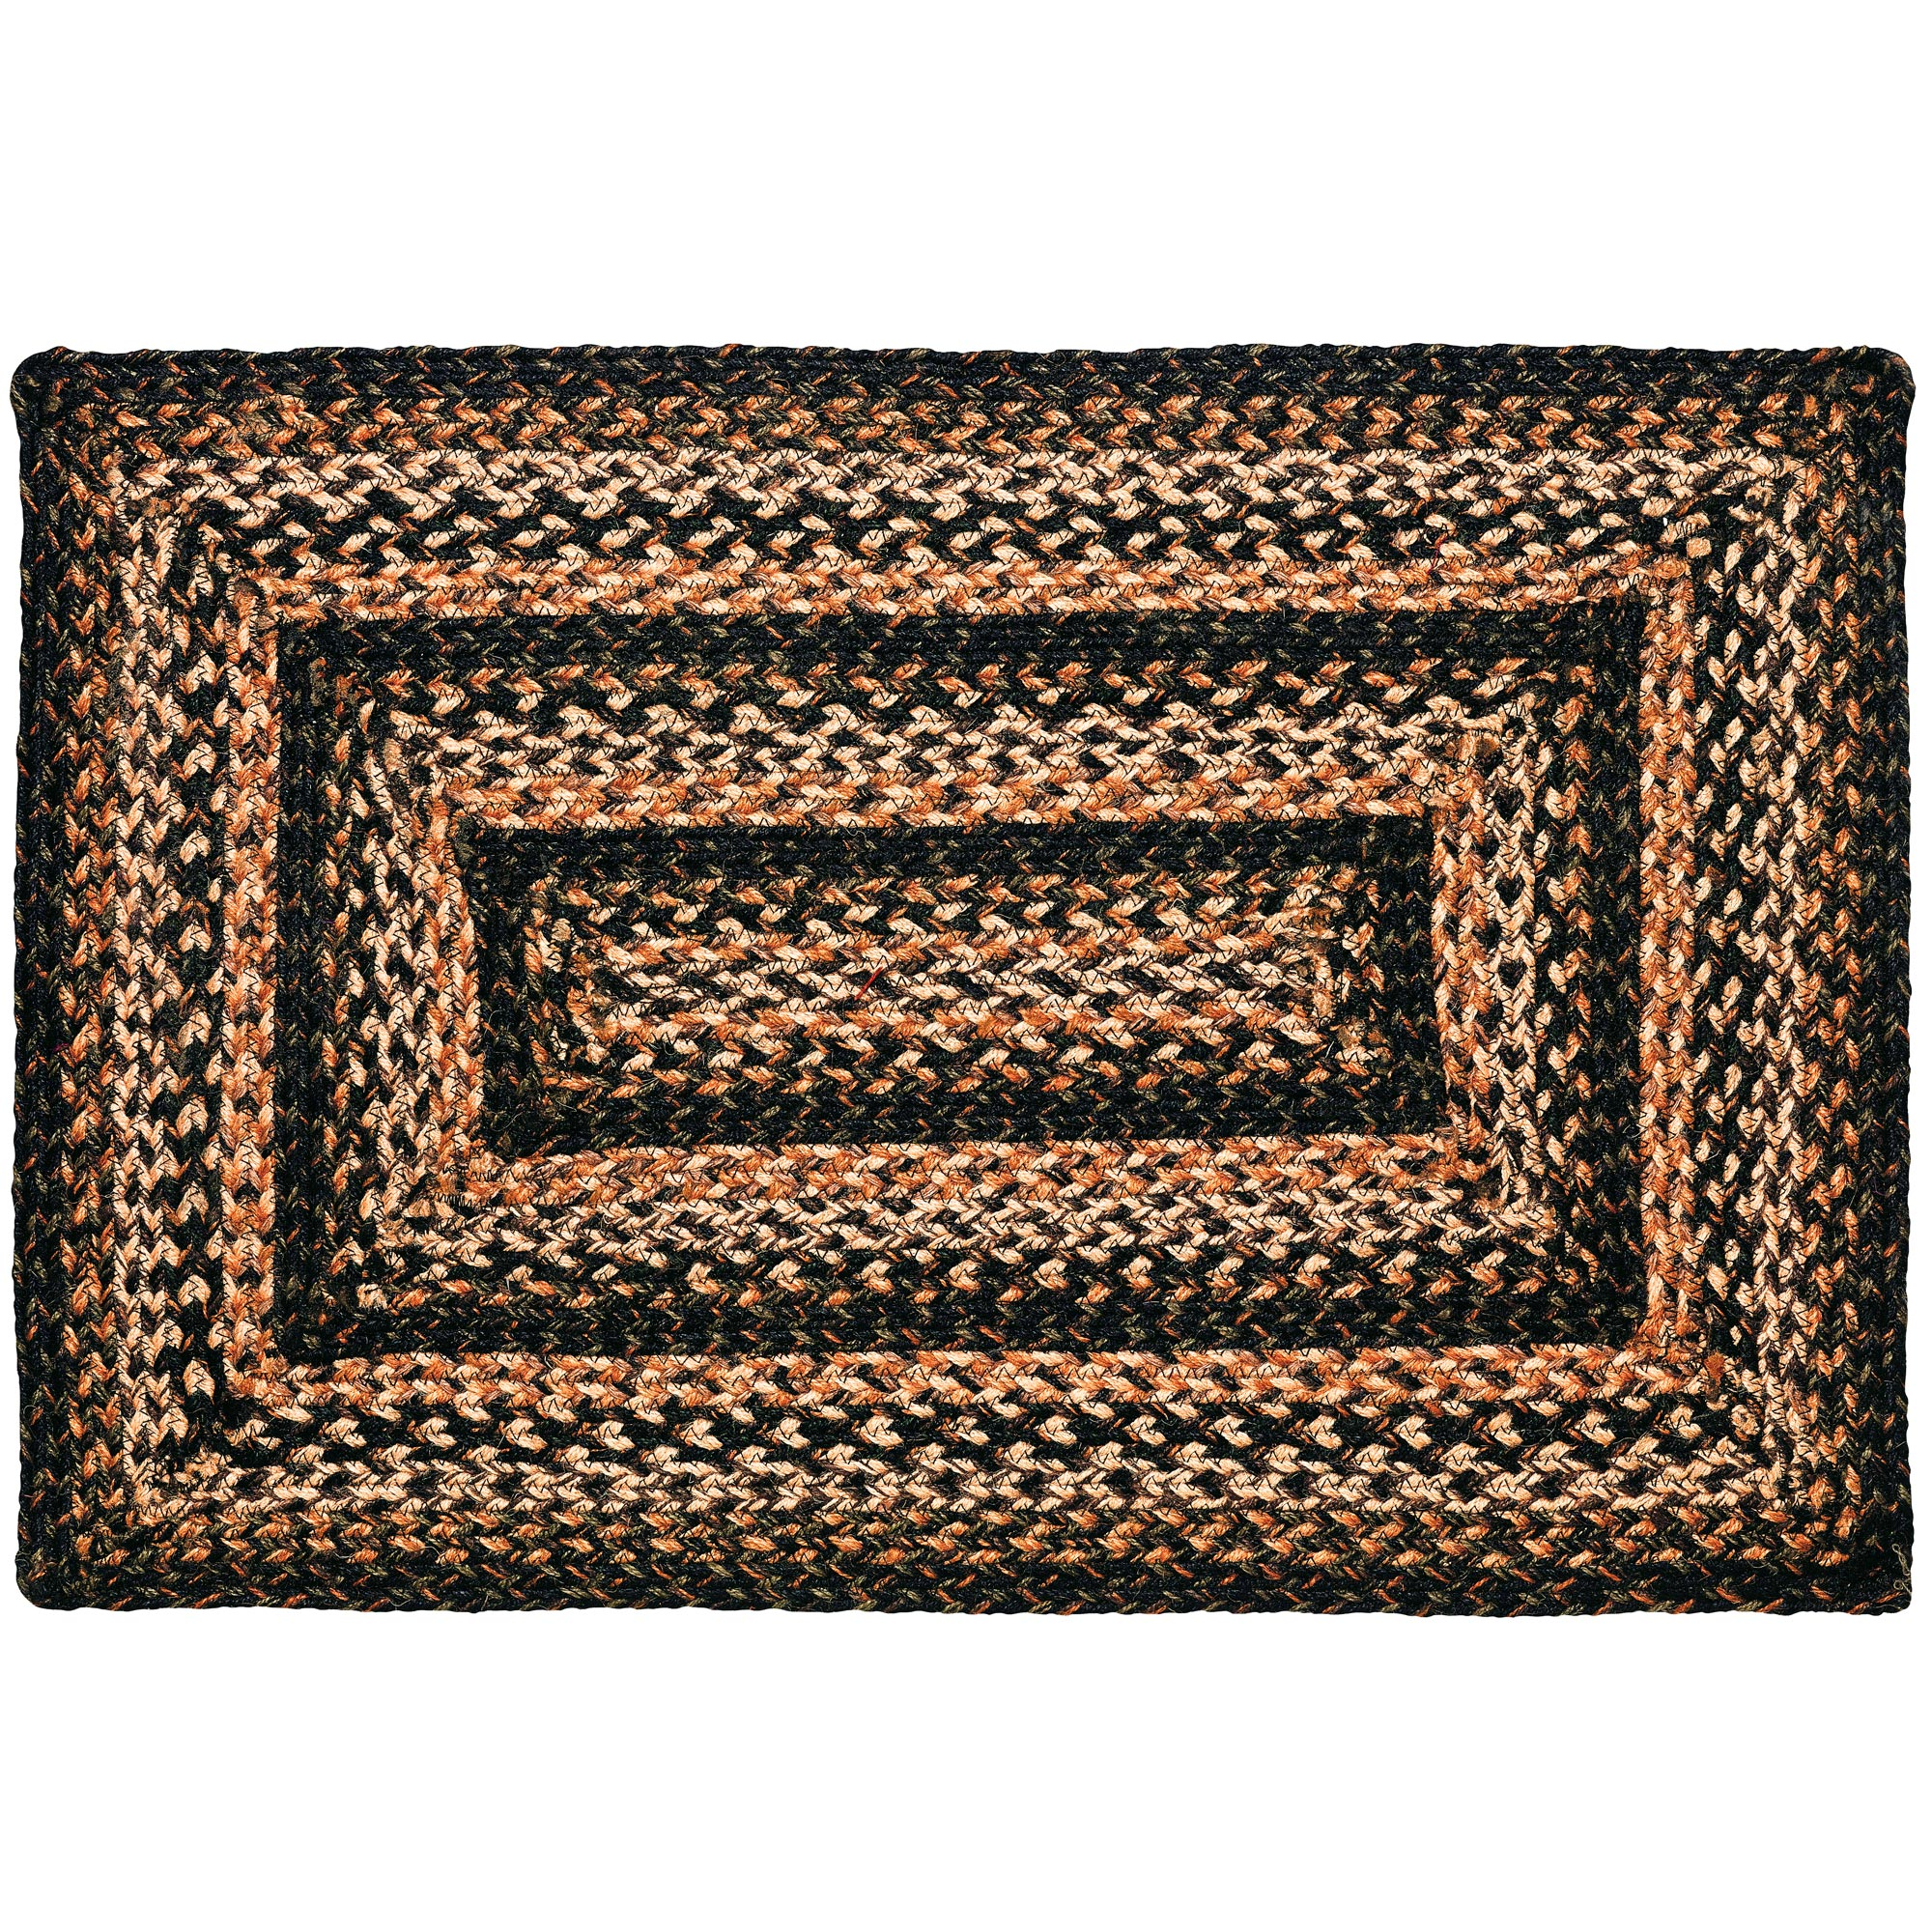 Braided Rug Black Forest Jute Country Primitive IHF by IHF Limited